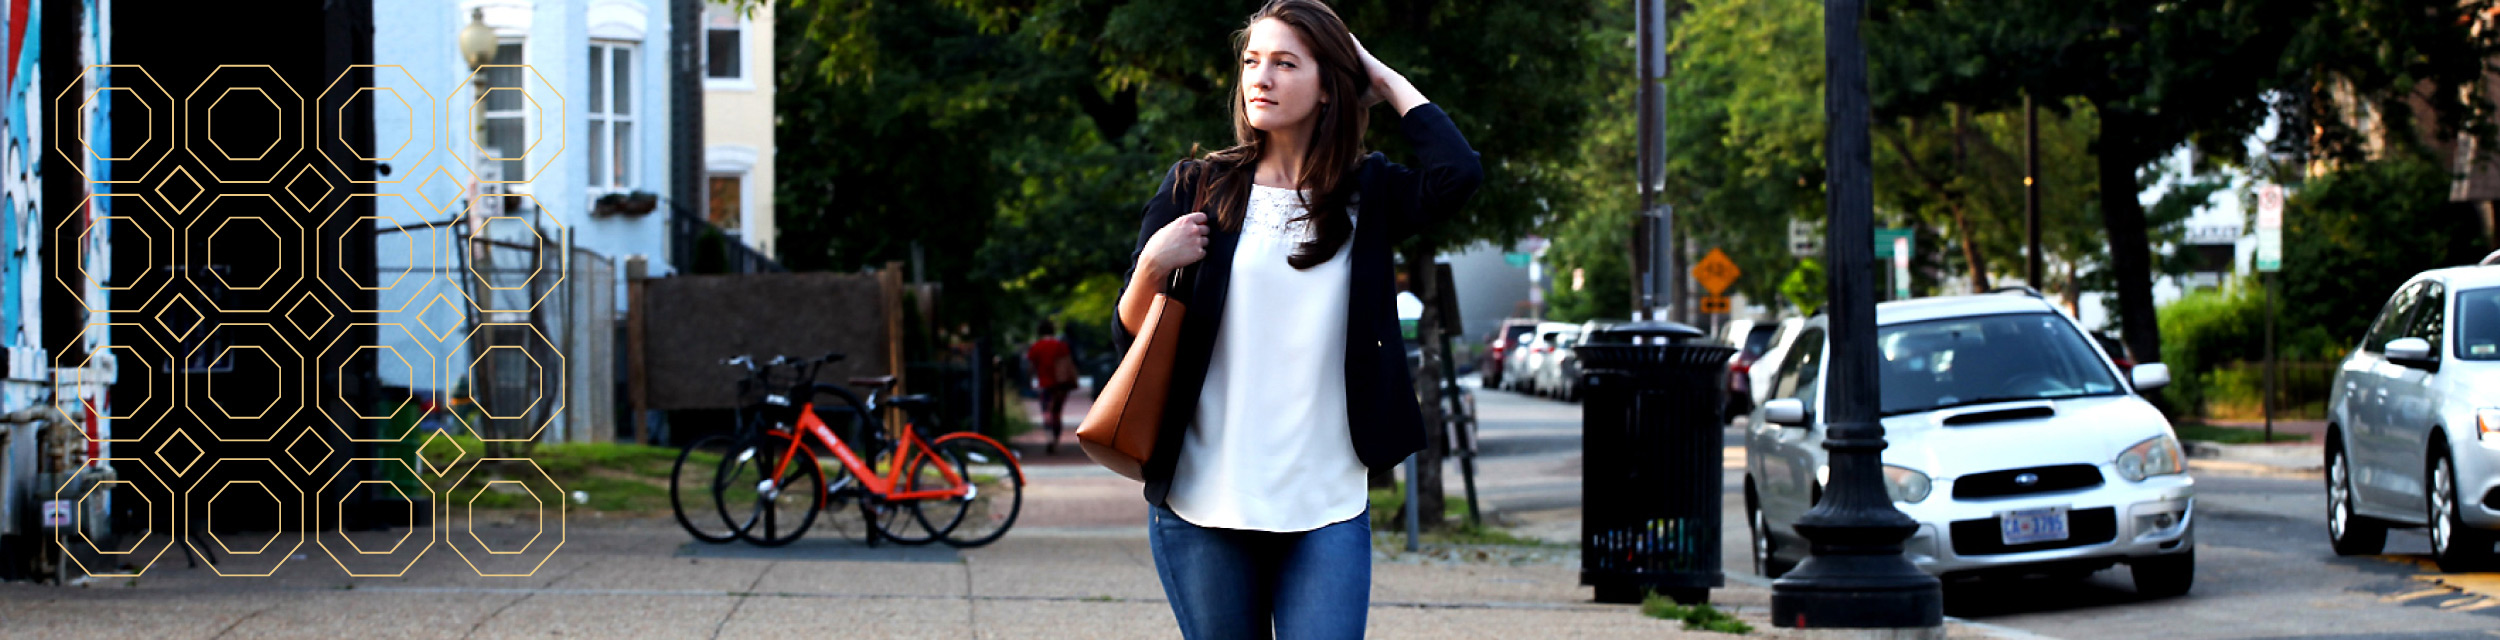 woman in white shirt, jeans and a brown jacket holding a leather bag and walking down a city sidewalk